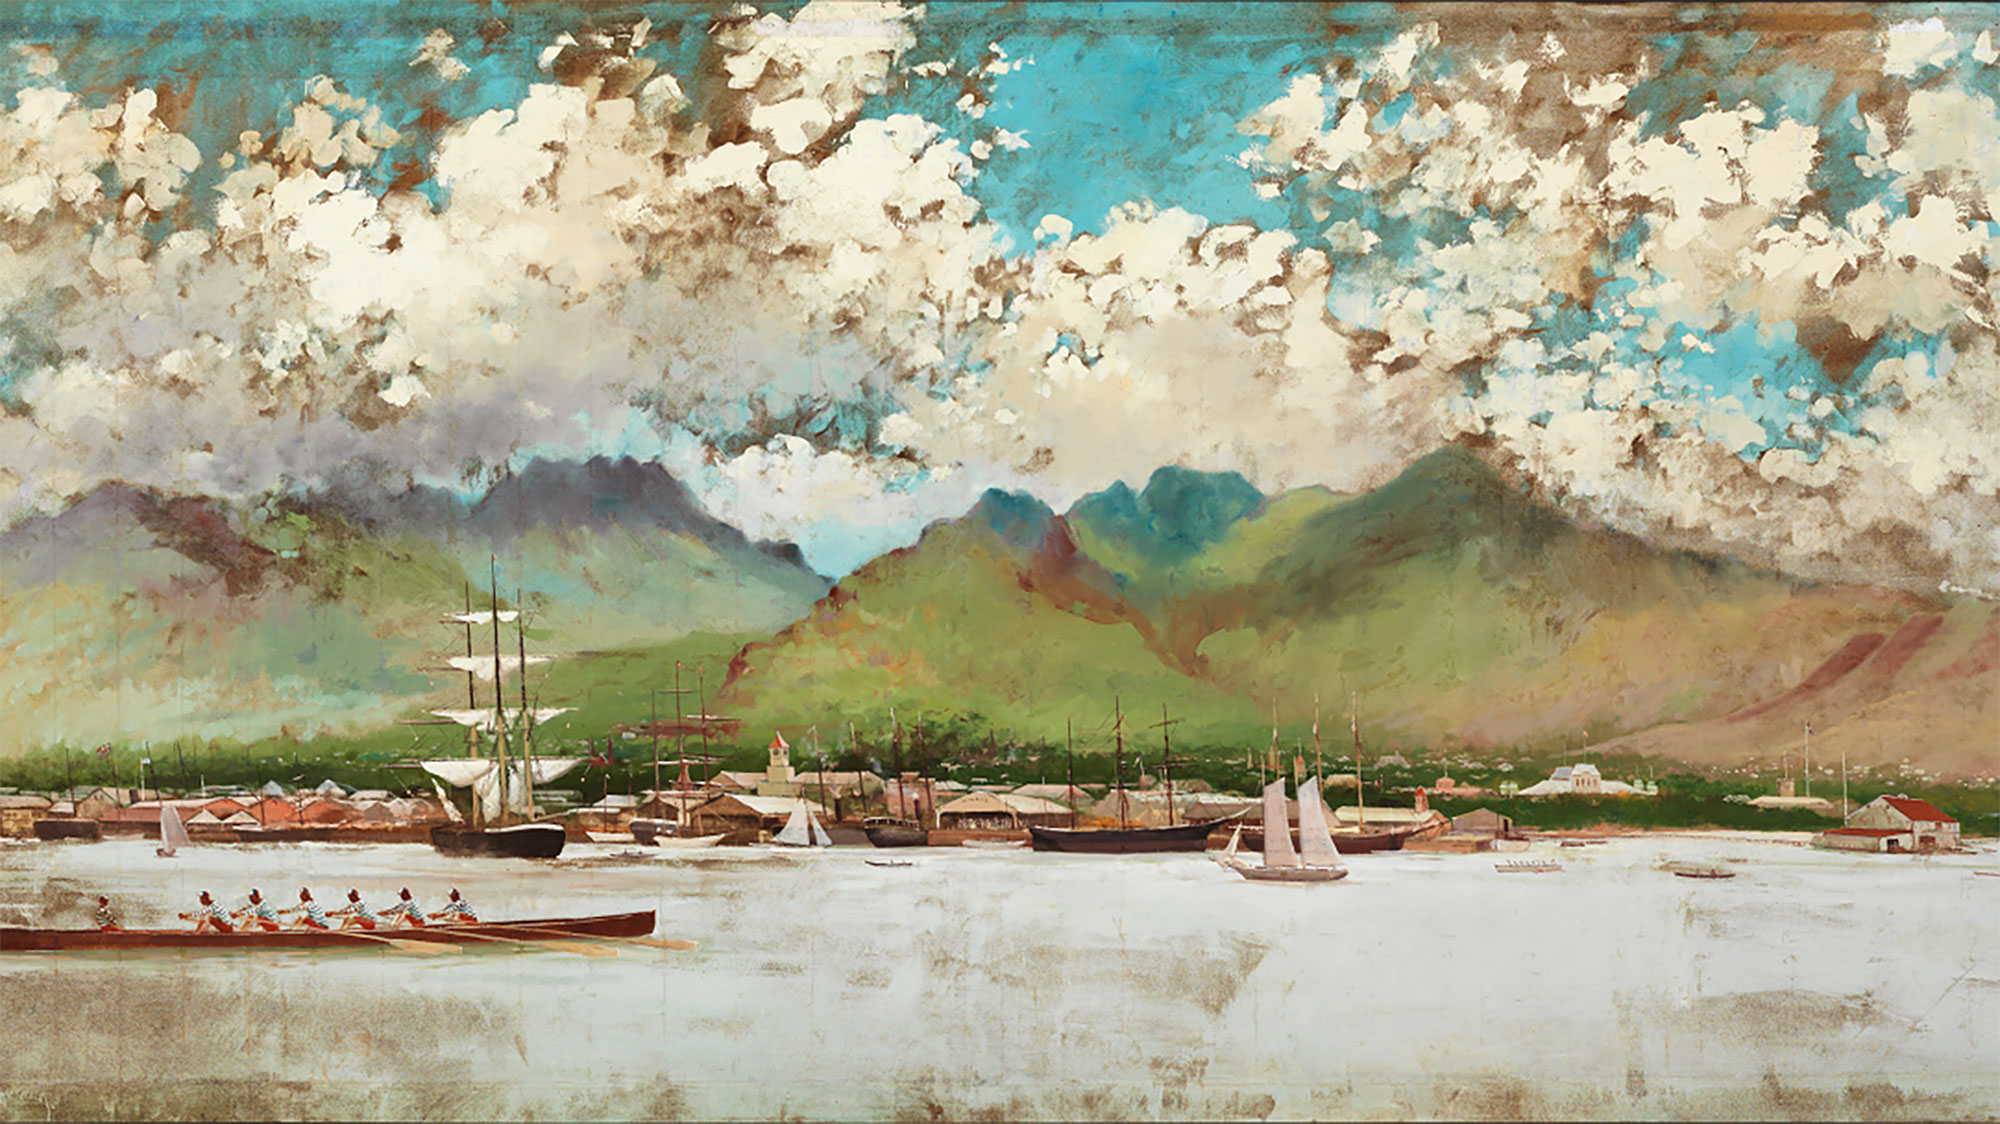 Honolulu Harbor, 1886 by Joseph Strong.